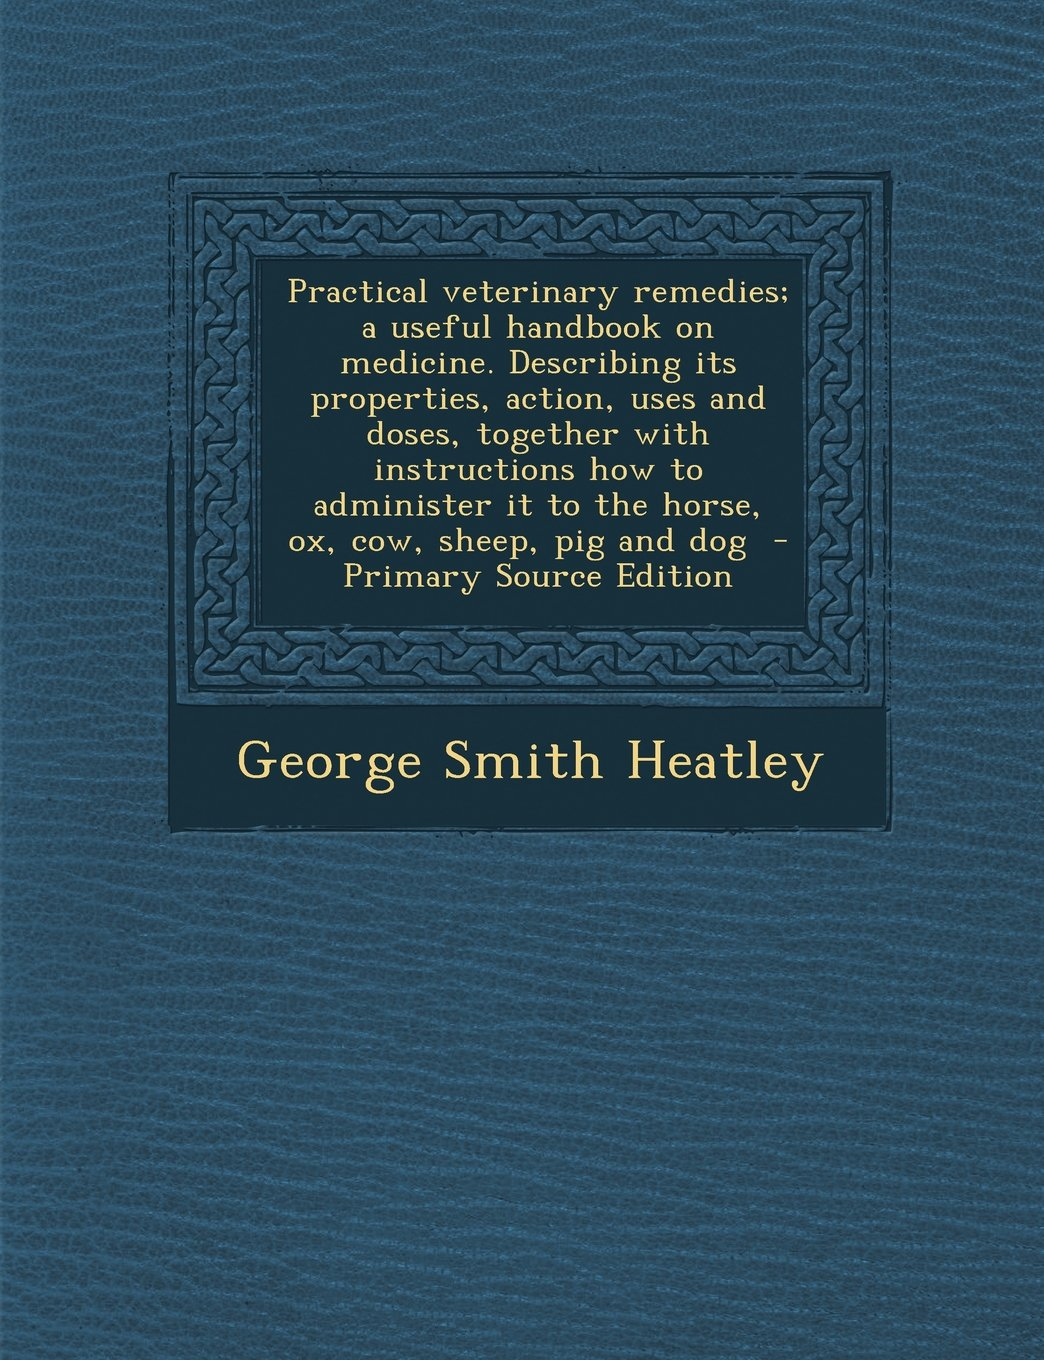 Practical veterinary remedies; a useful handbook on medicine. Describing its properties, action, uses and doses, together with instructions how to ... sheep, pig and dog  - Primary Source Edition pdf